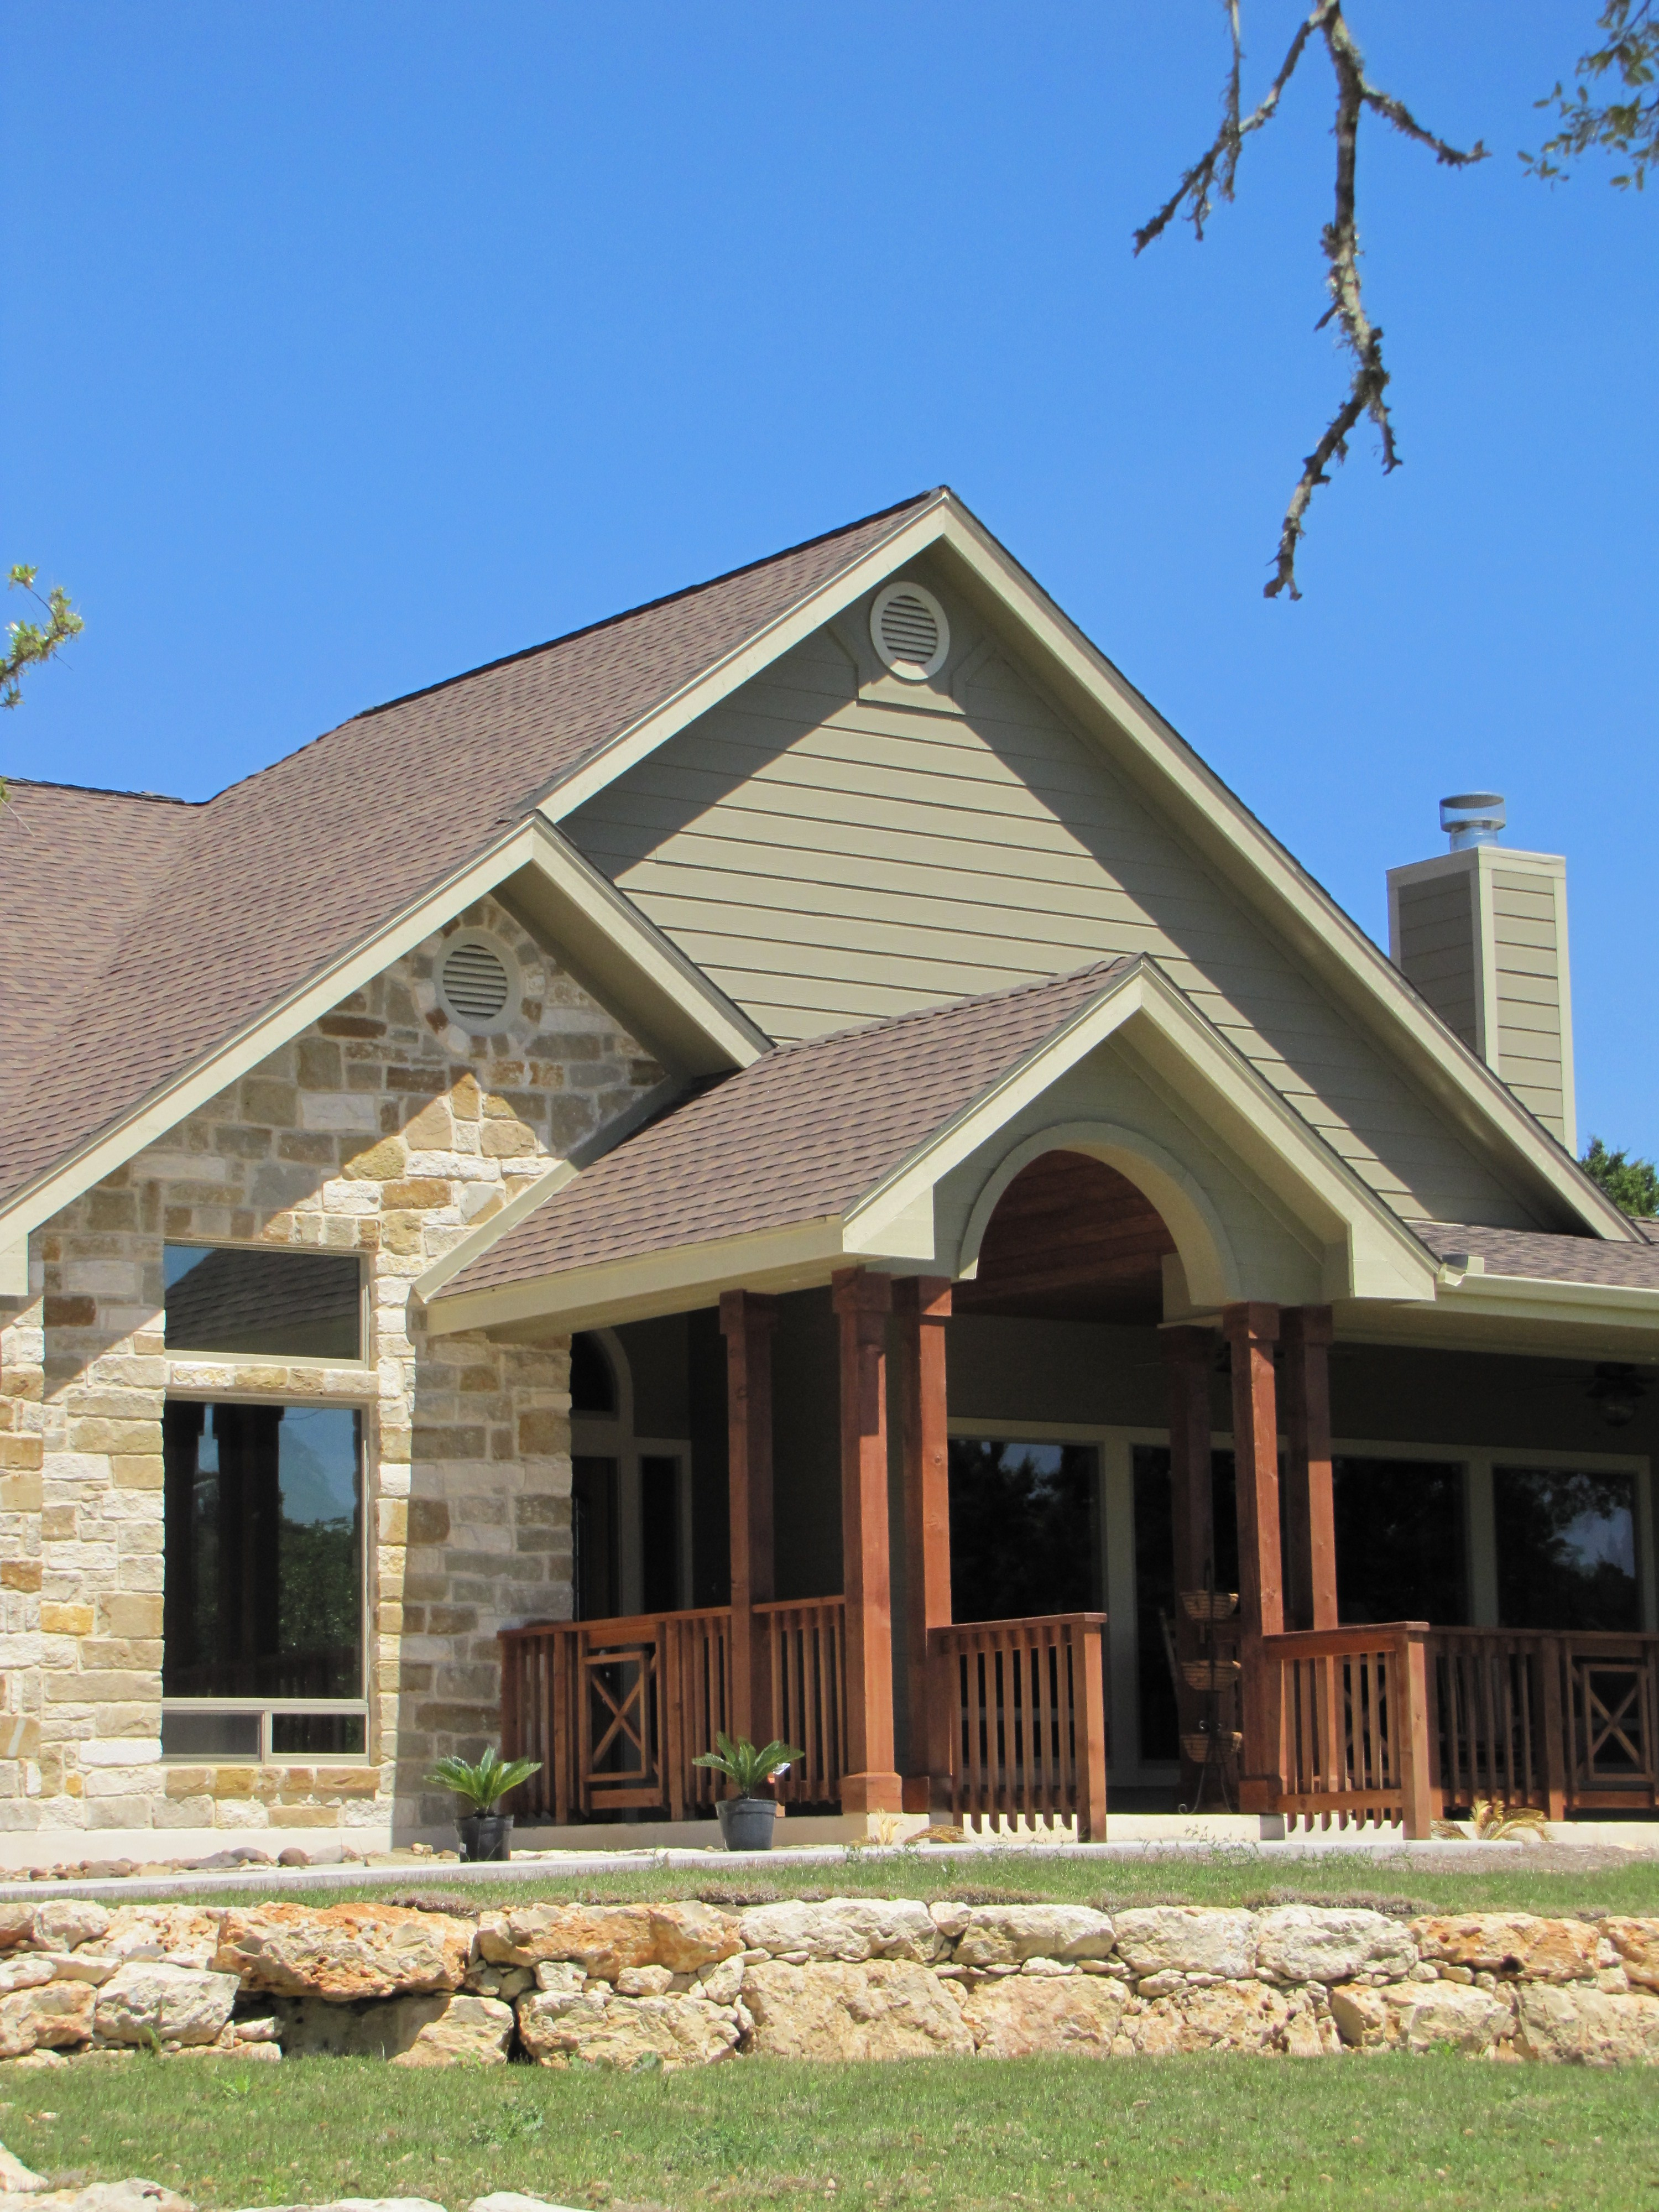 San antonio casual custom home river hills custom homes for Customize home